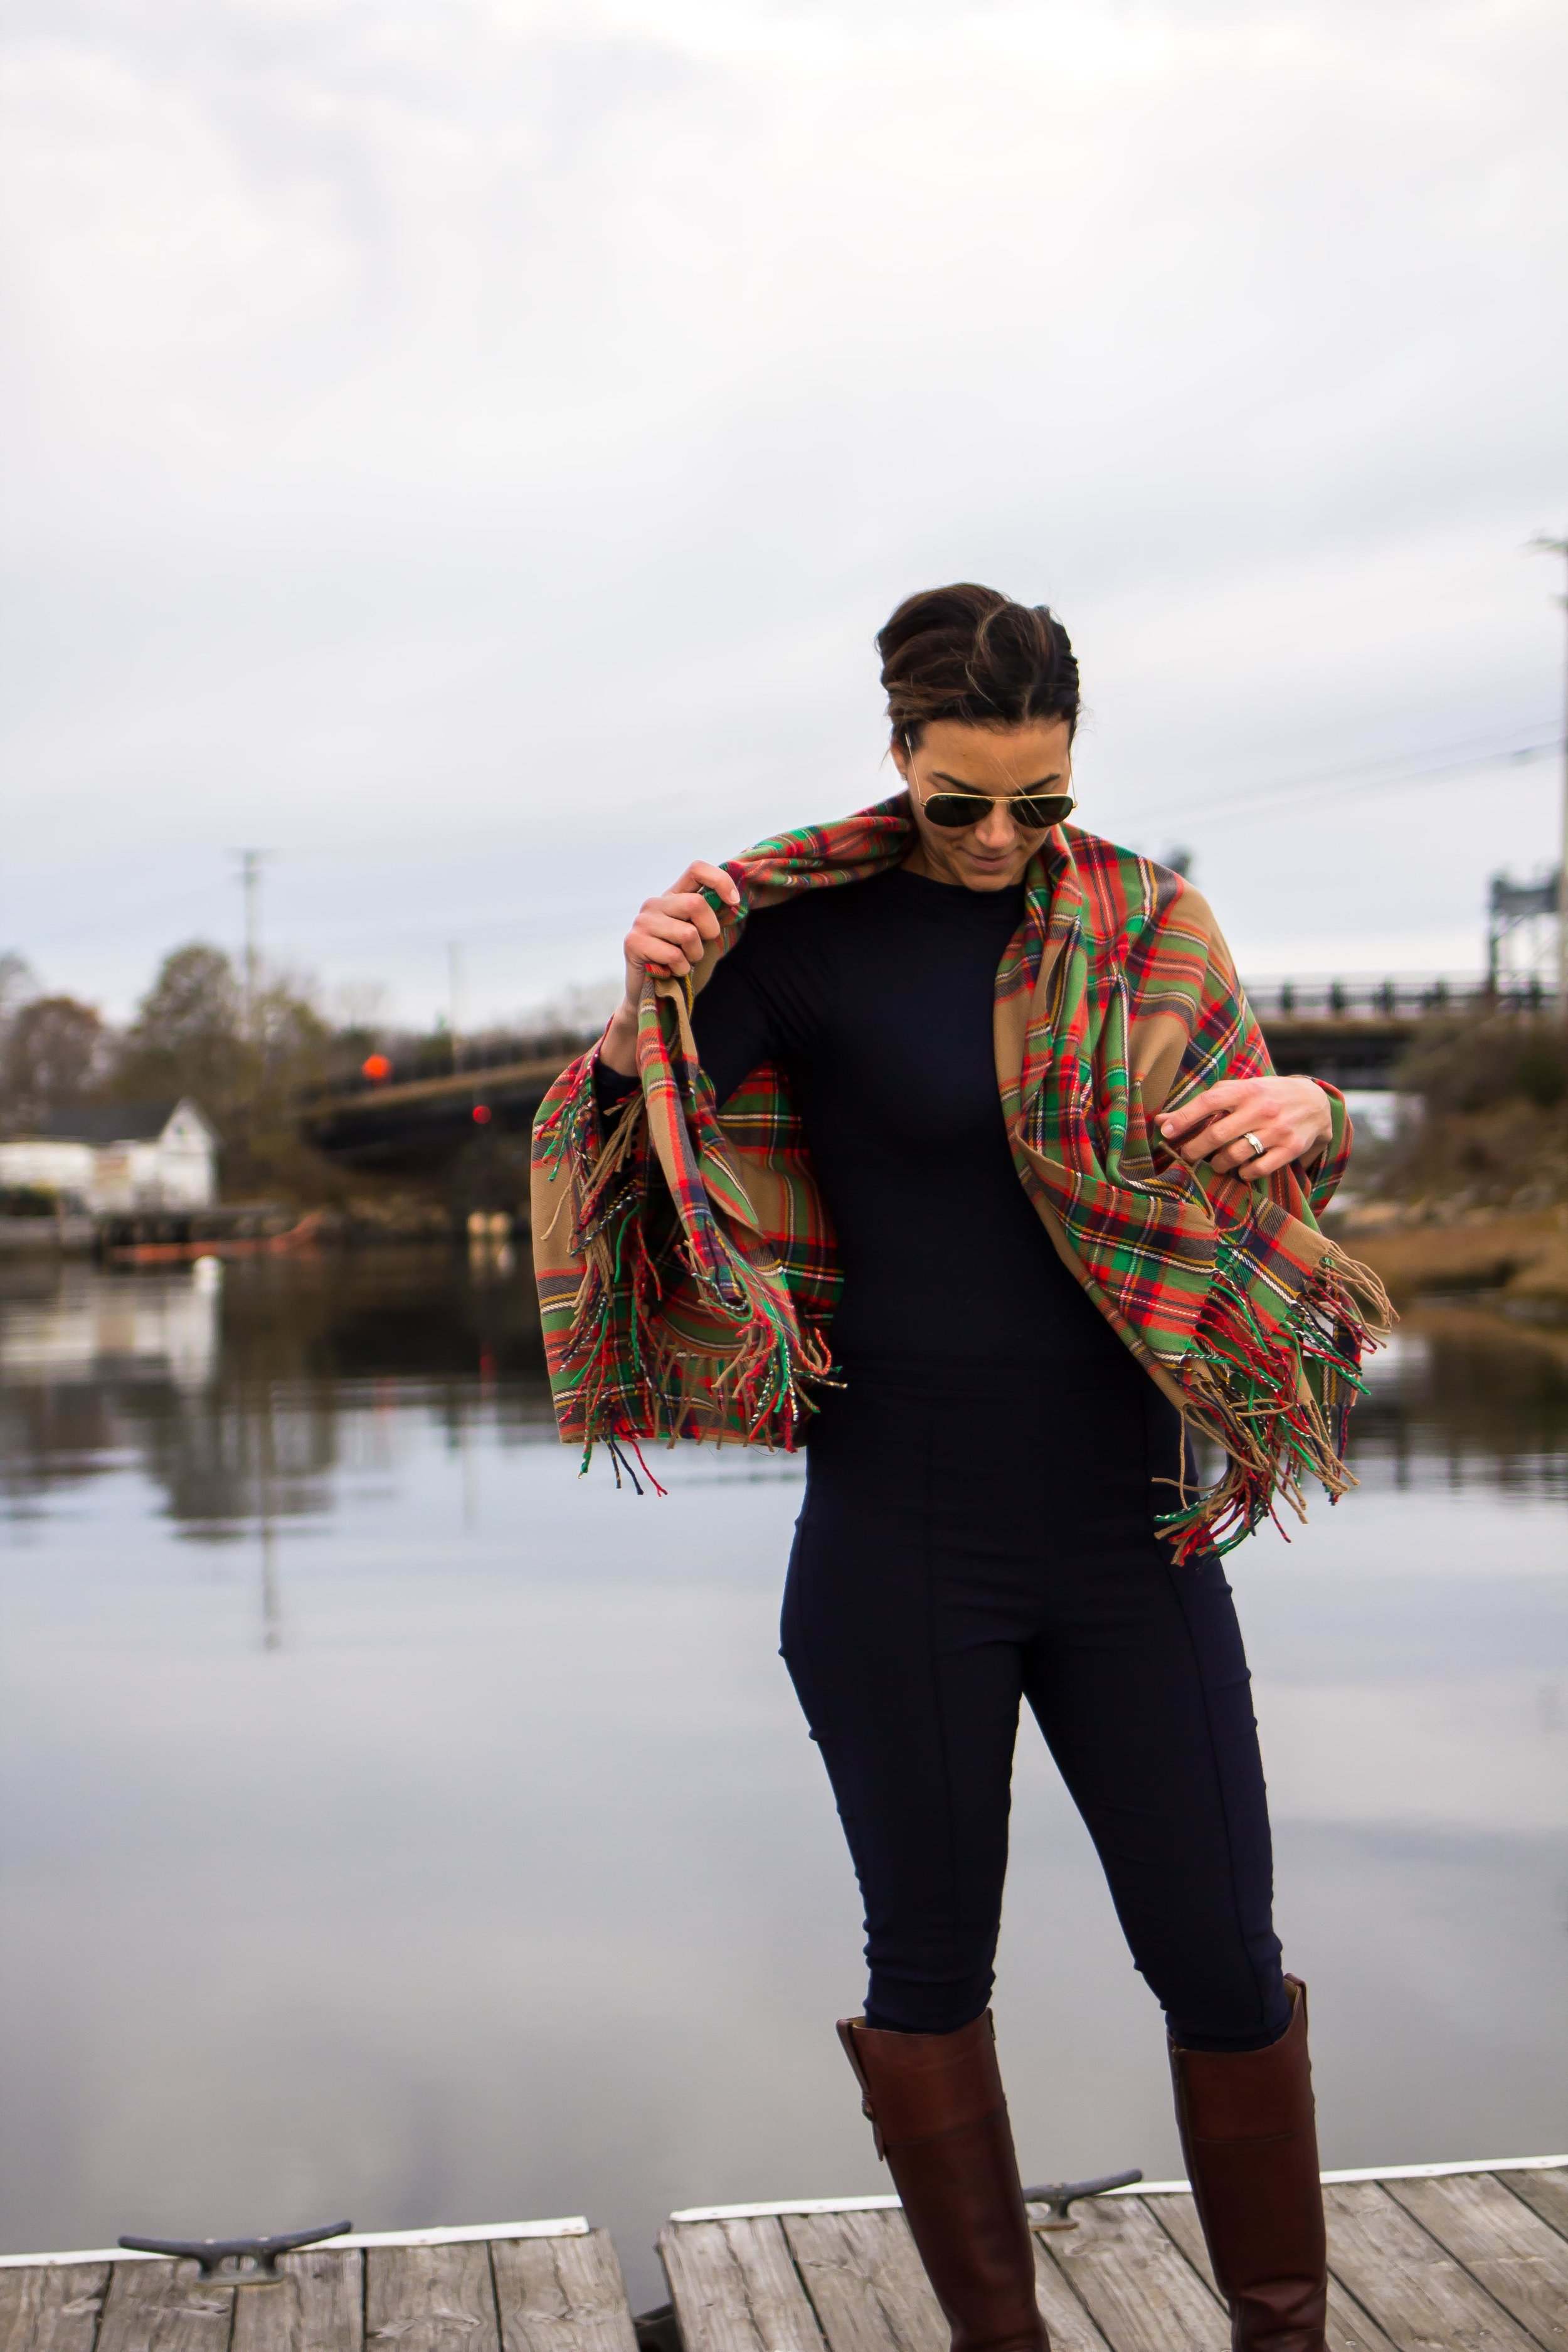 Fall Outfits – Winter Outfits - Plaid Outfit Ideas- Blanket Scarf Outfit – Casual Outfits – Frye Boots Outfit – Fashion for Women –  heartandseam.com  #heartandseam #fryeboots